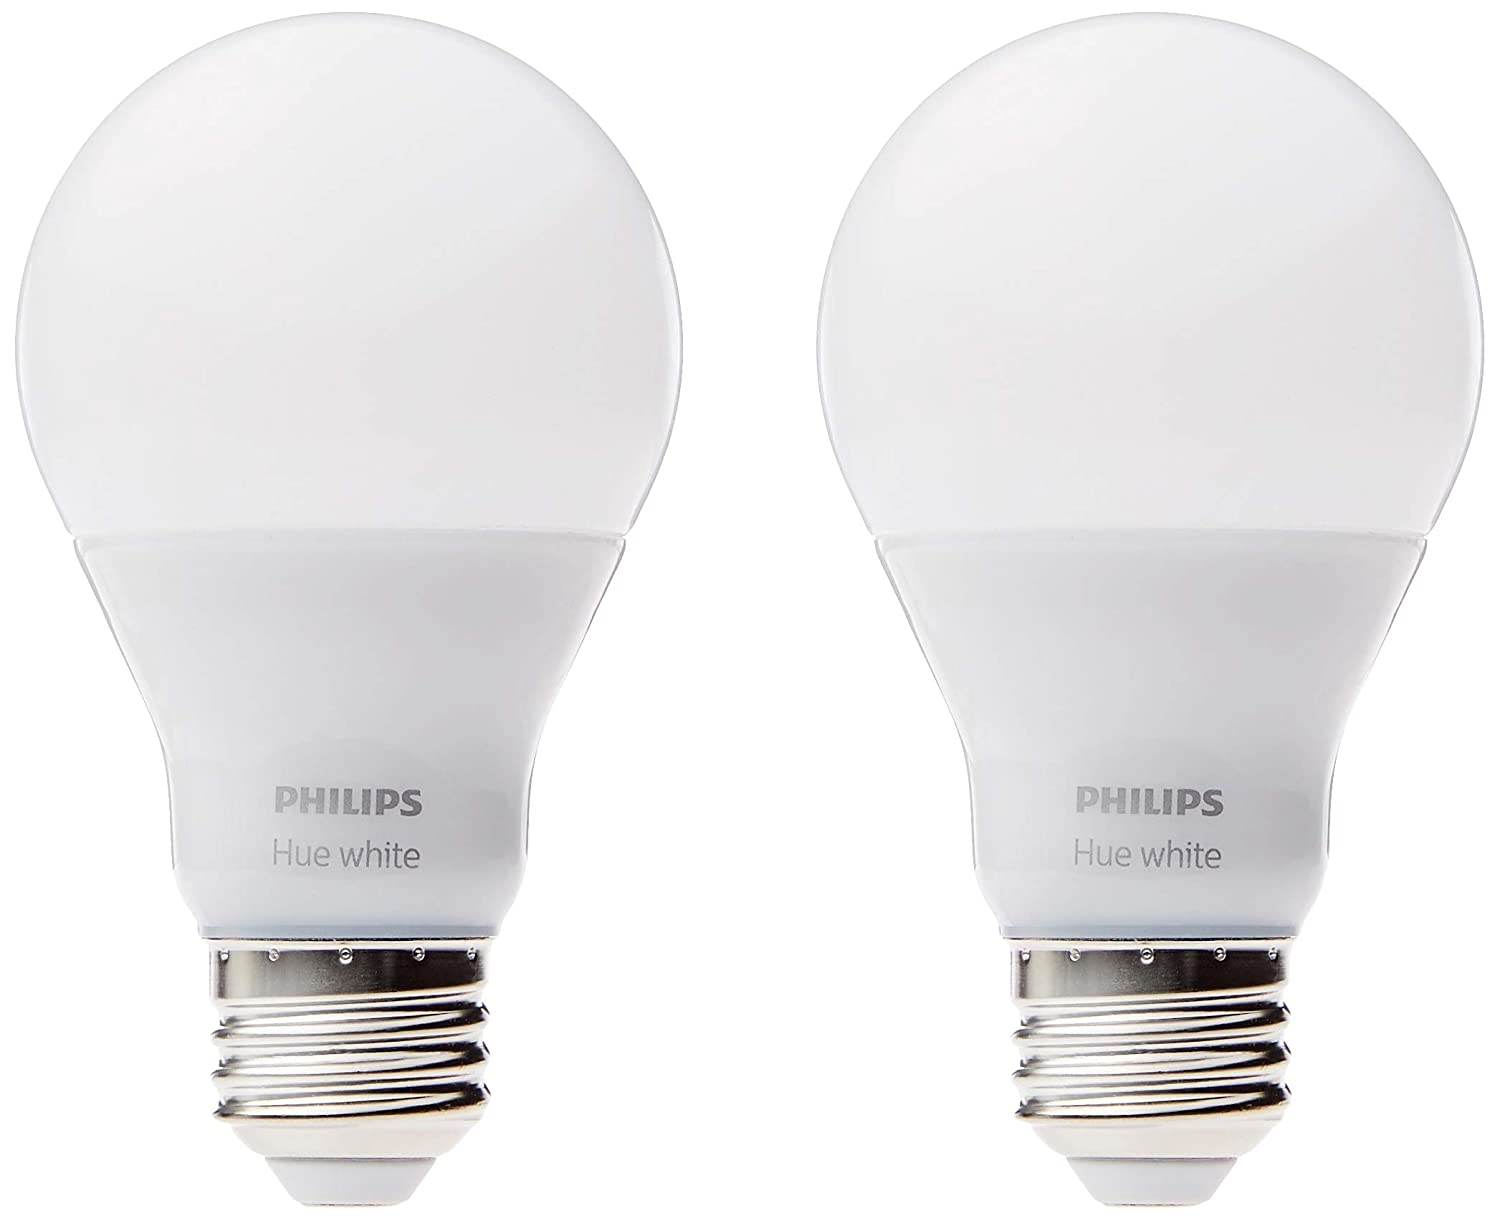 Philips Hue White A19 2 Pack 60W Equivalent Dimmable LED Smart Bulb Works with Alexa Apple HomeKit and Google Assistant